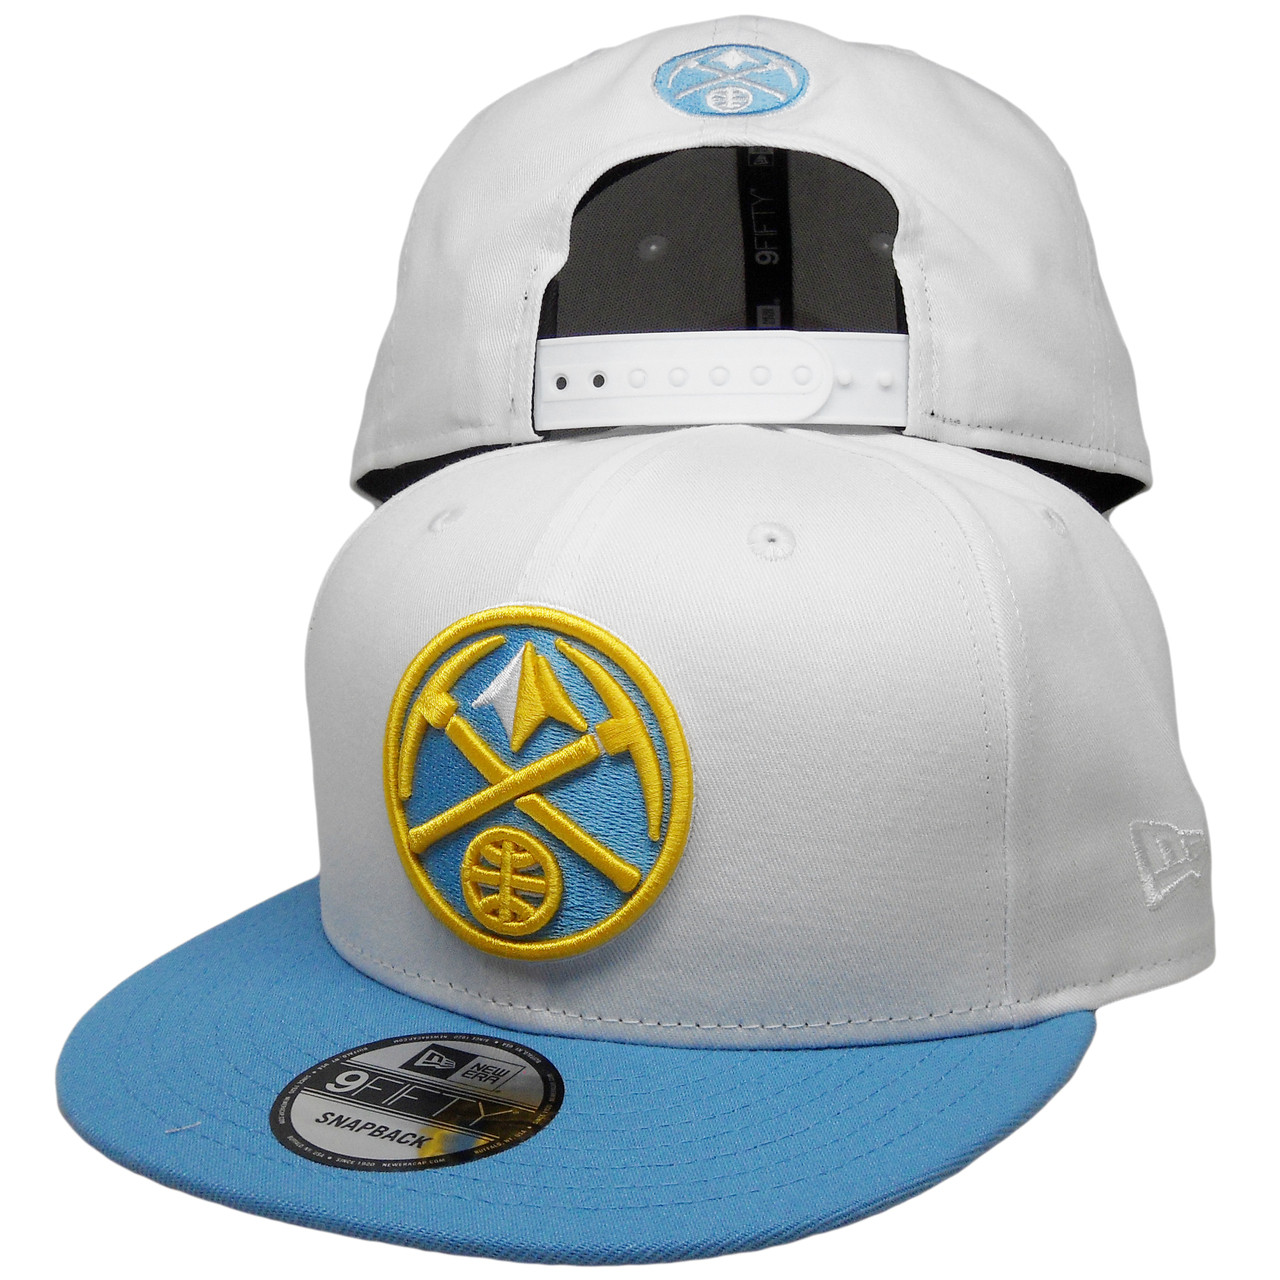 new product 65313 341d8 Denver Nuggets New Era Custom 9Fifty Snapback - White, Sky Blue, Yellow -  ECapsUnlimited.com